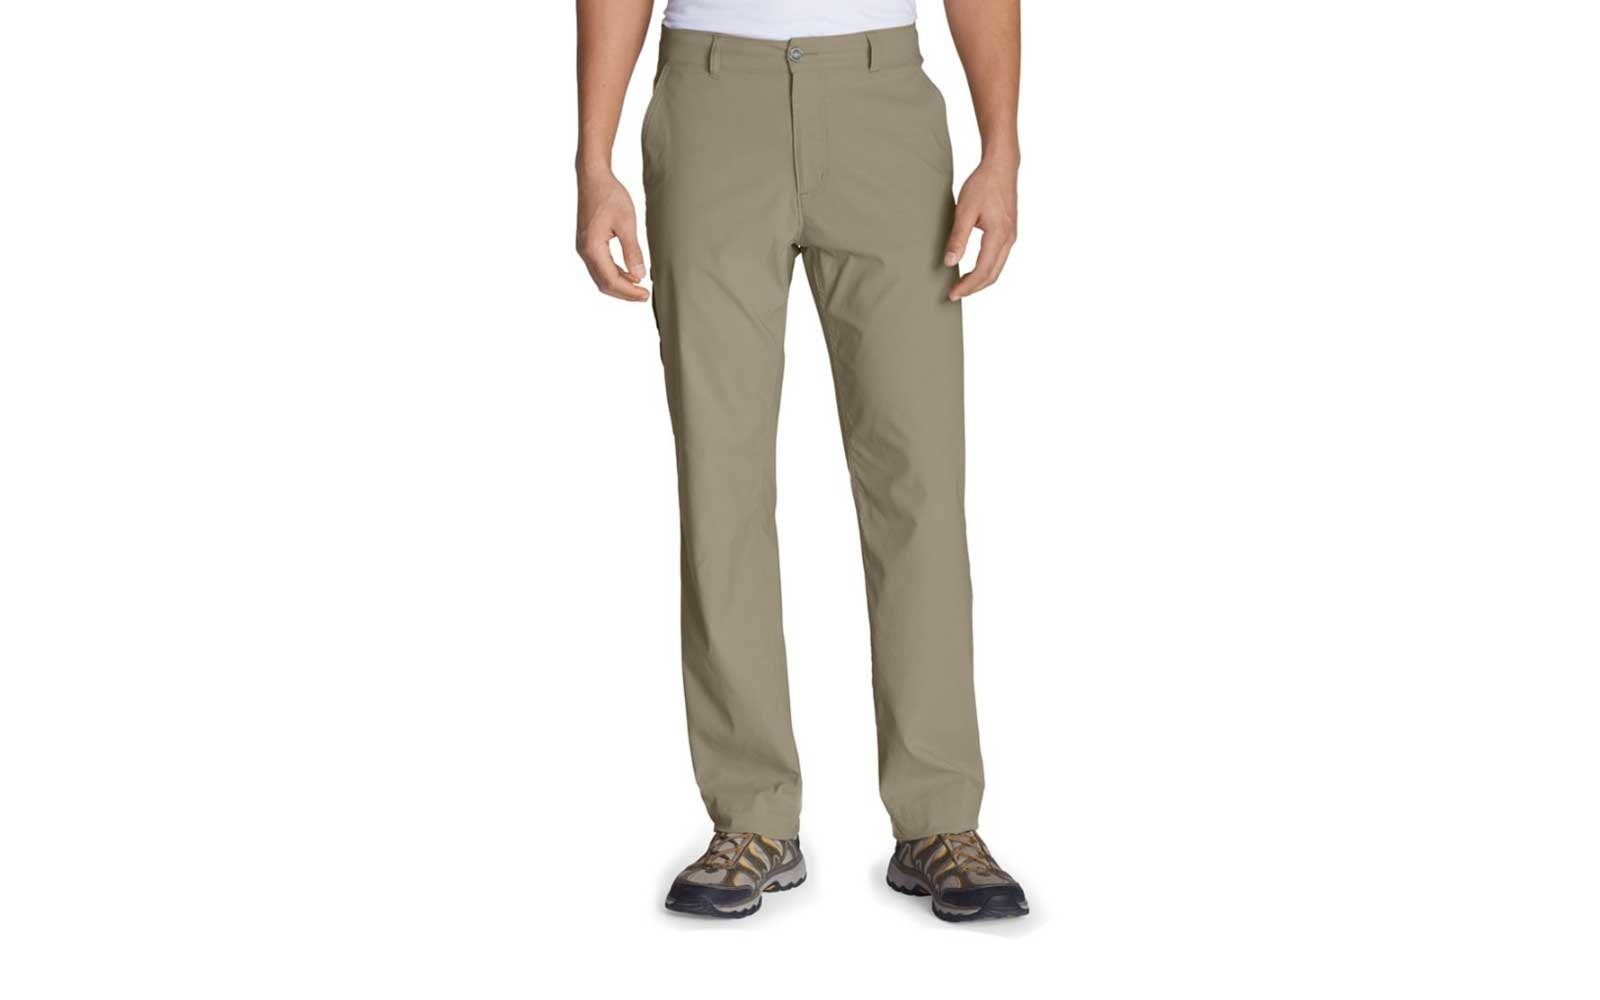 70e4c98a70274 The Best Men s Travel Pants for Every Type of Trip